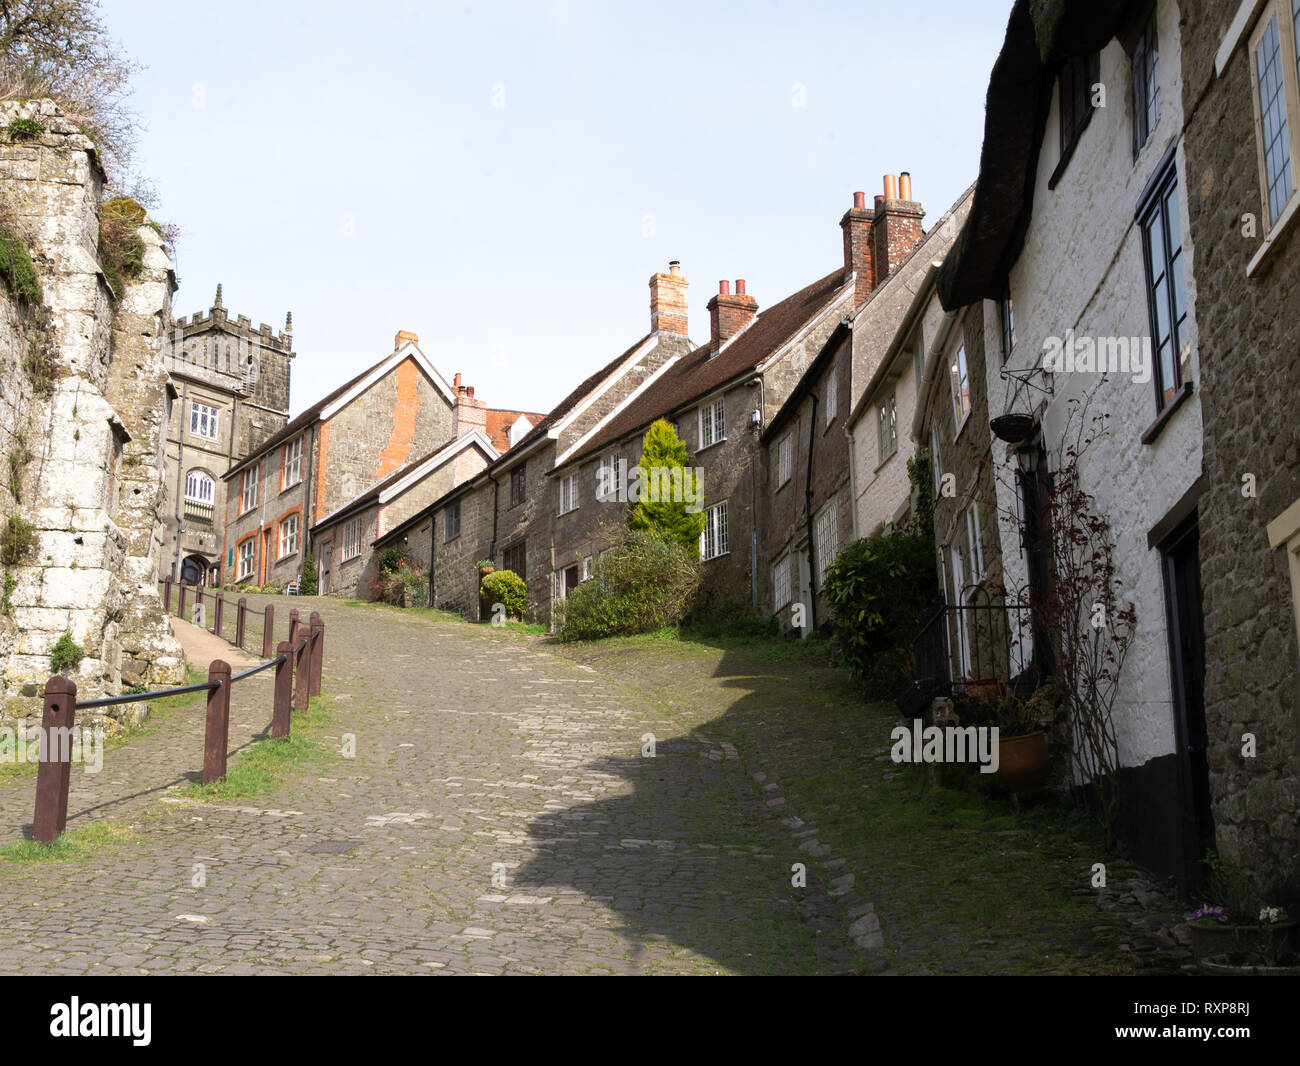 Gold hill ('Hovis' hill), Shaftesbury, Dorset, UK - Stock Image